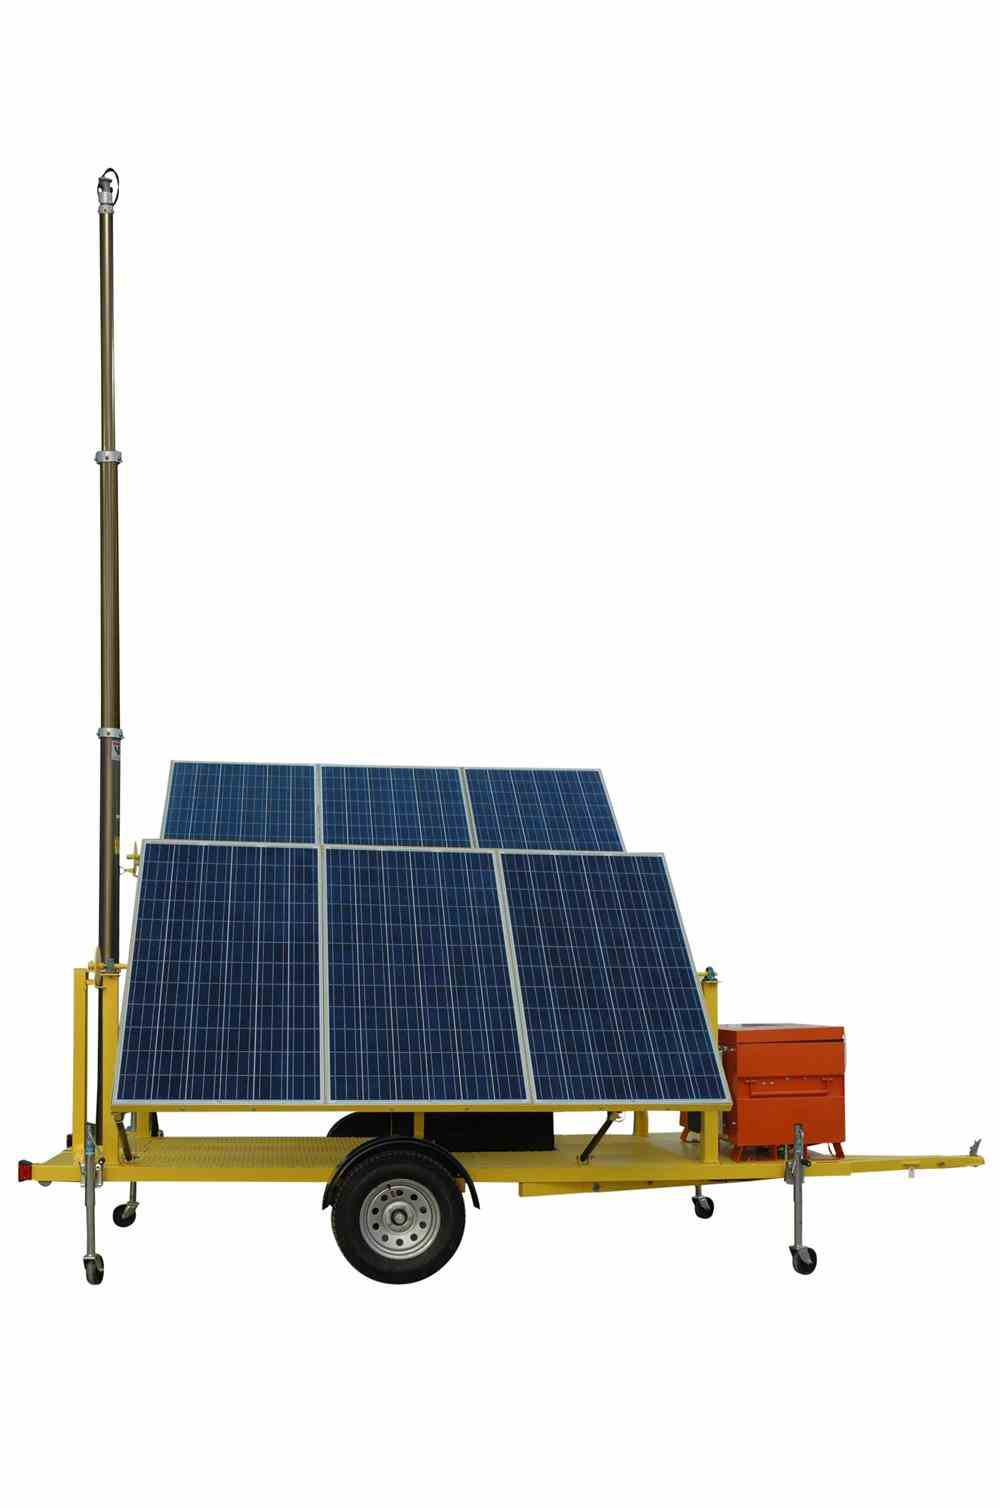 30' Trailer-Mounted, Solar-Powered Generator Features Pneumatic Tower Mast